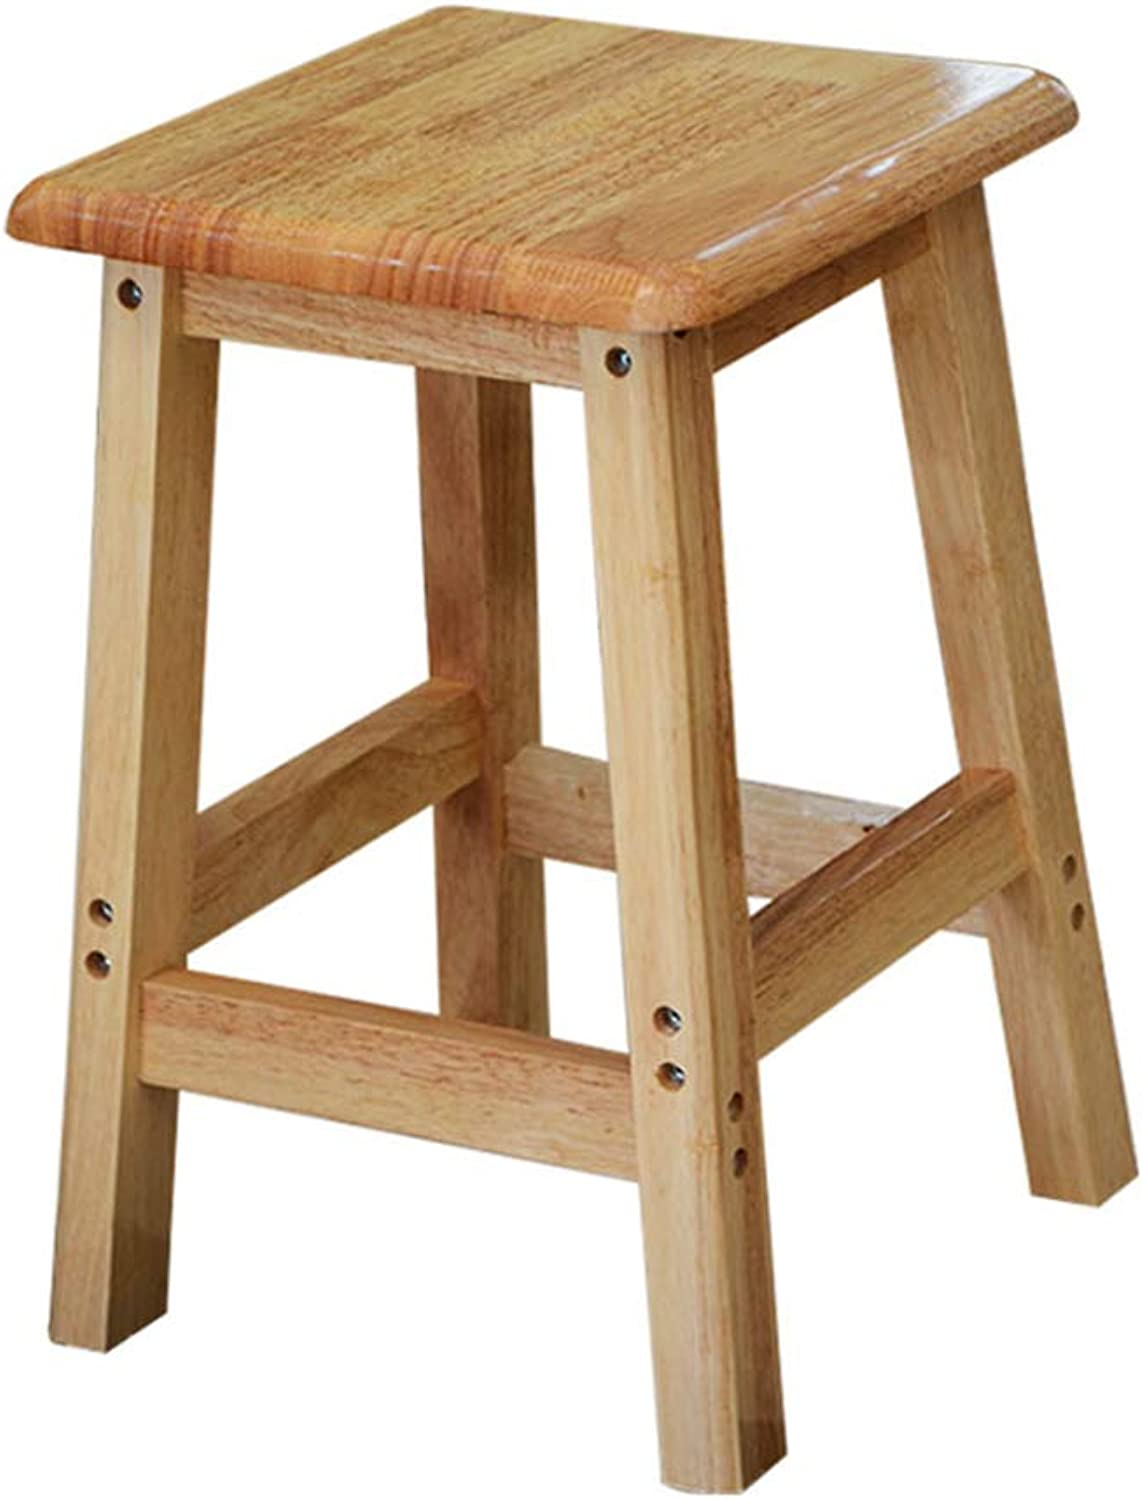 ZHAOYONGLI Square Stool Home Solid Wood Restaurant Square Stool Student High Bench Square Table Coffee Table Stool Wood High Stool Creative Solid Durable Long Lasting (Size   45CM)